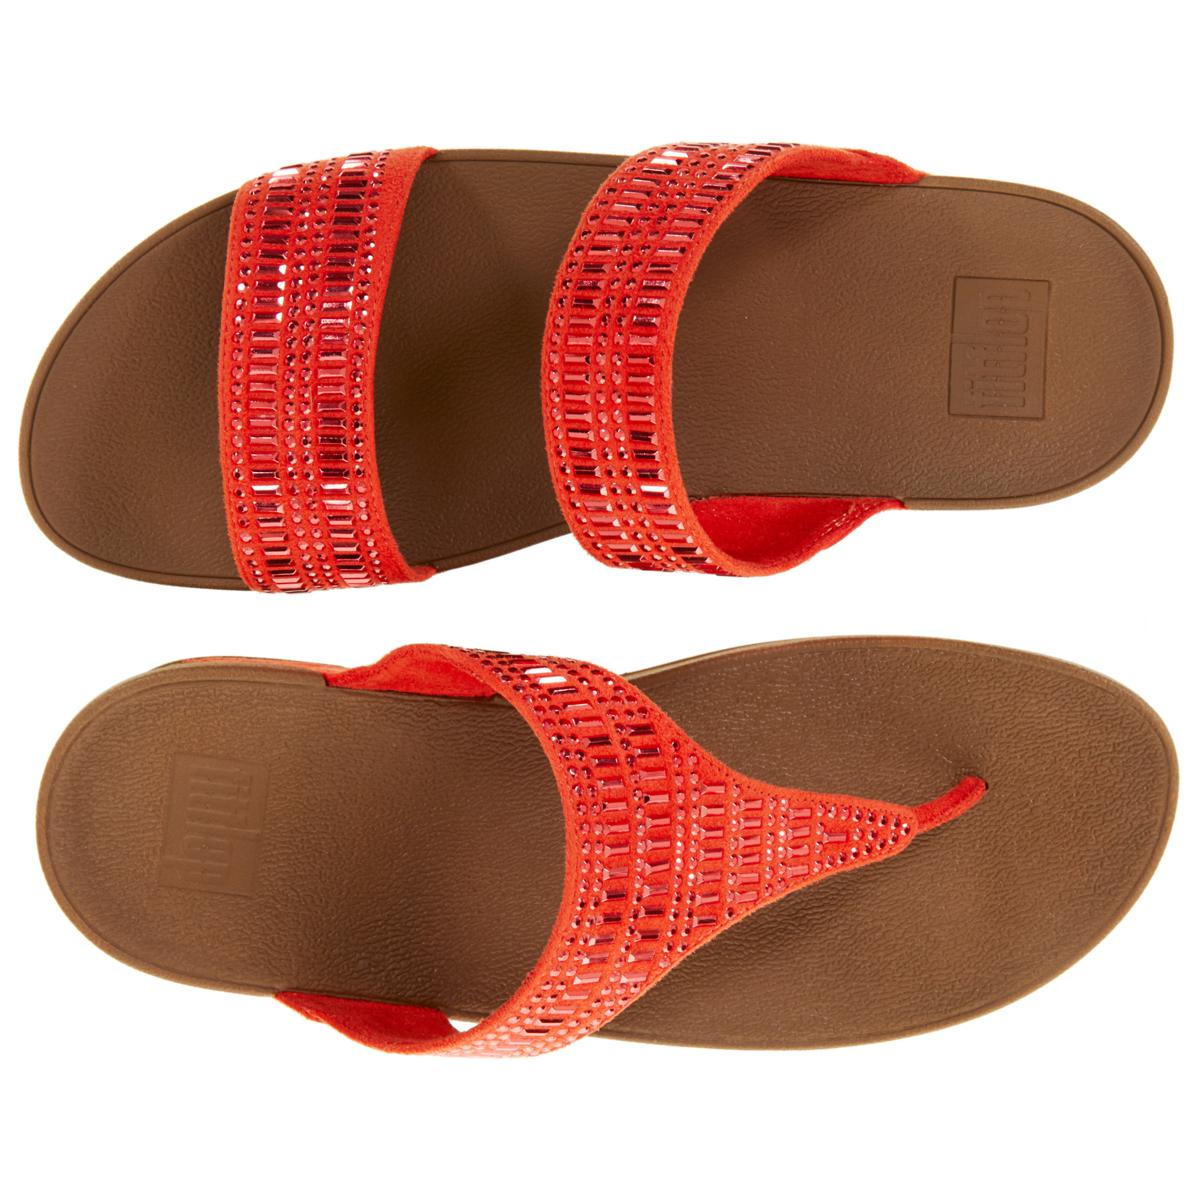 6a15d347b1b HSN) FitFlop Incastone Slide or Sandal - TVShoppingQueens